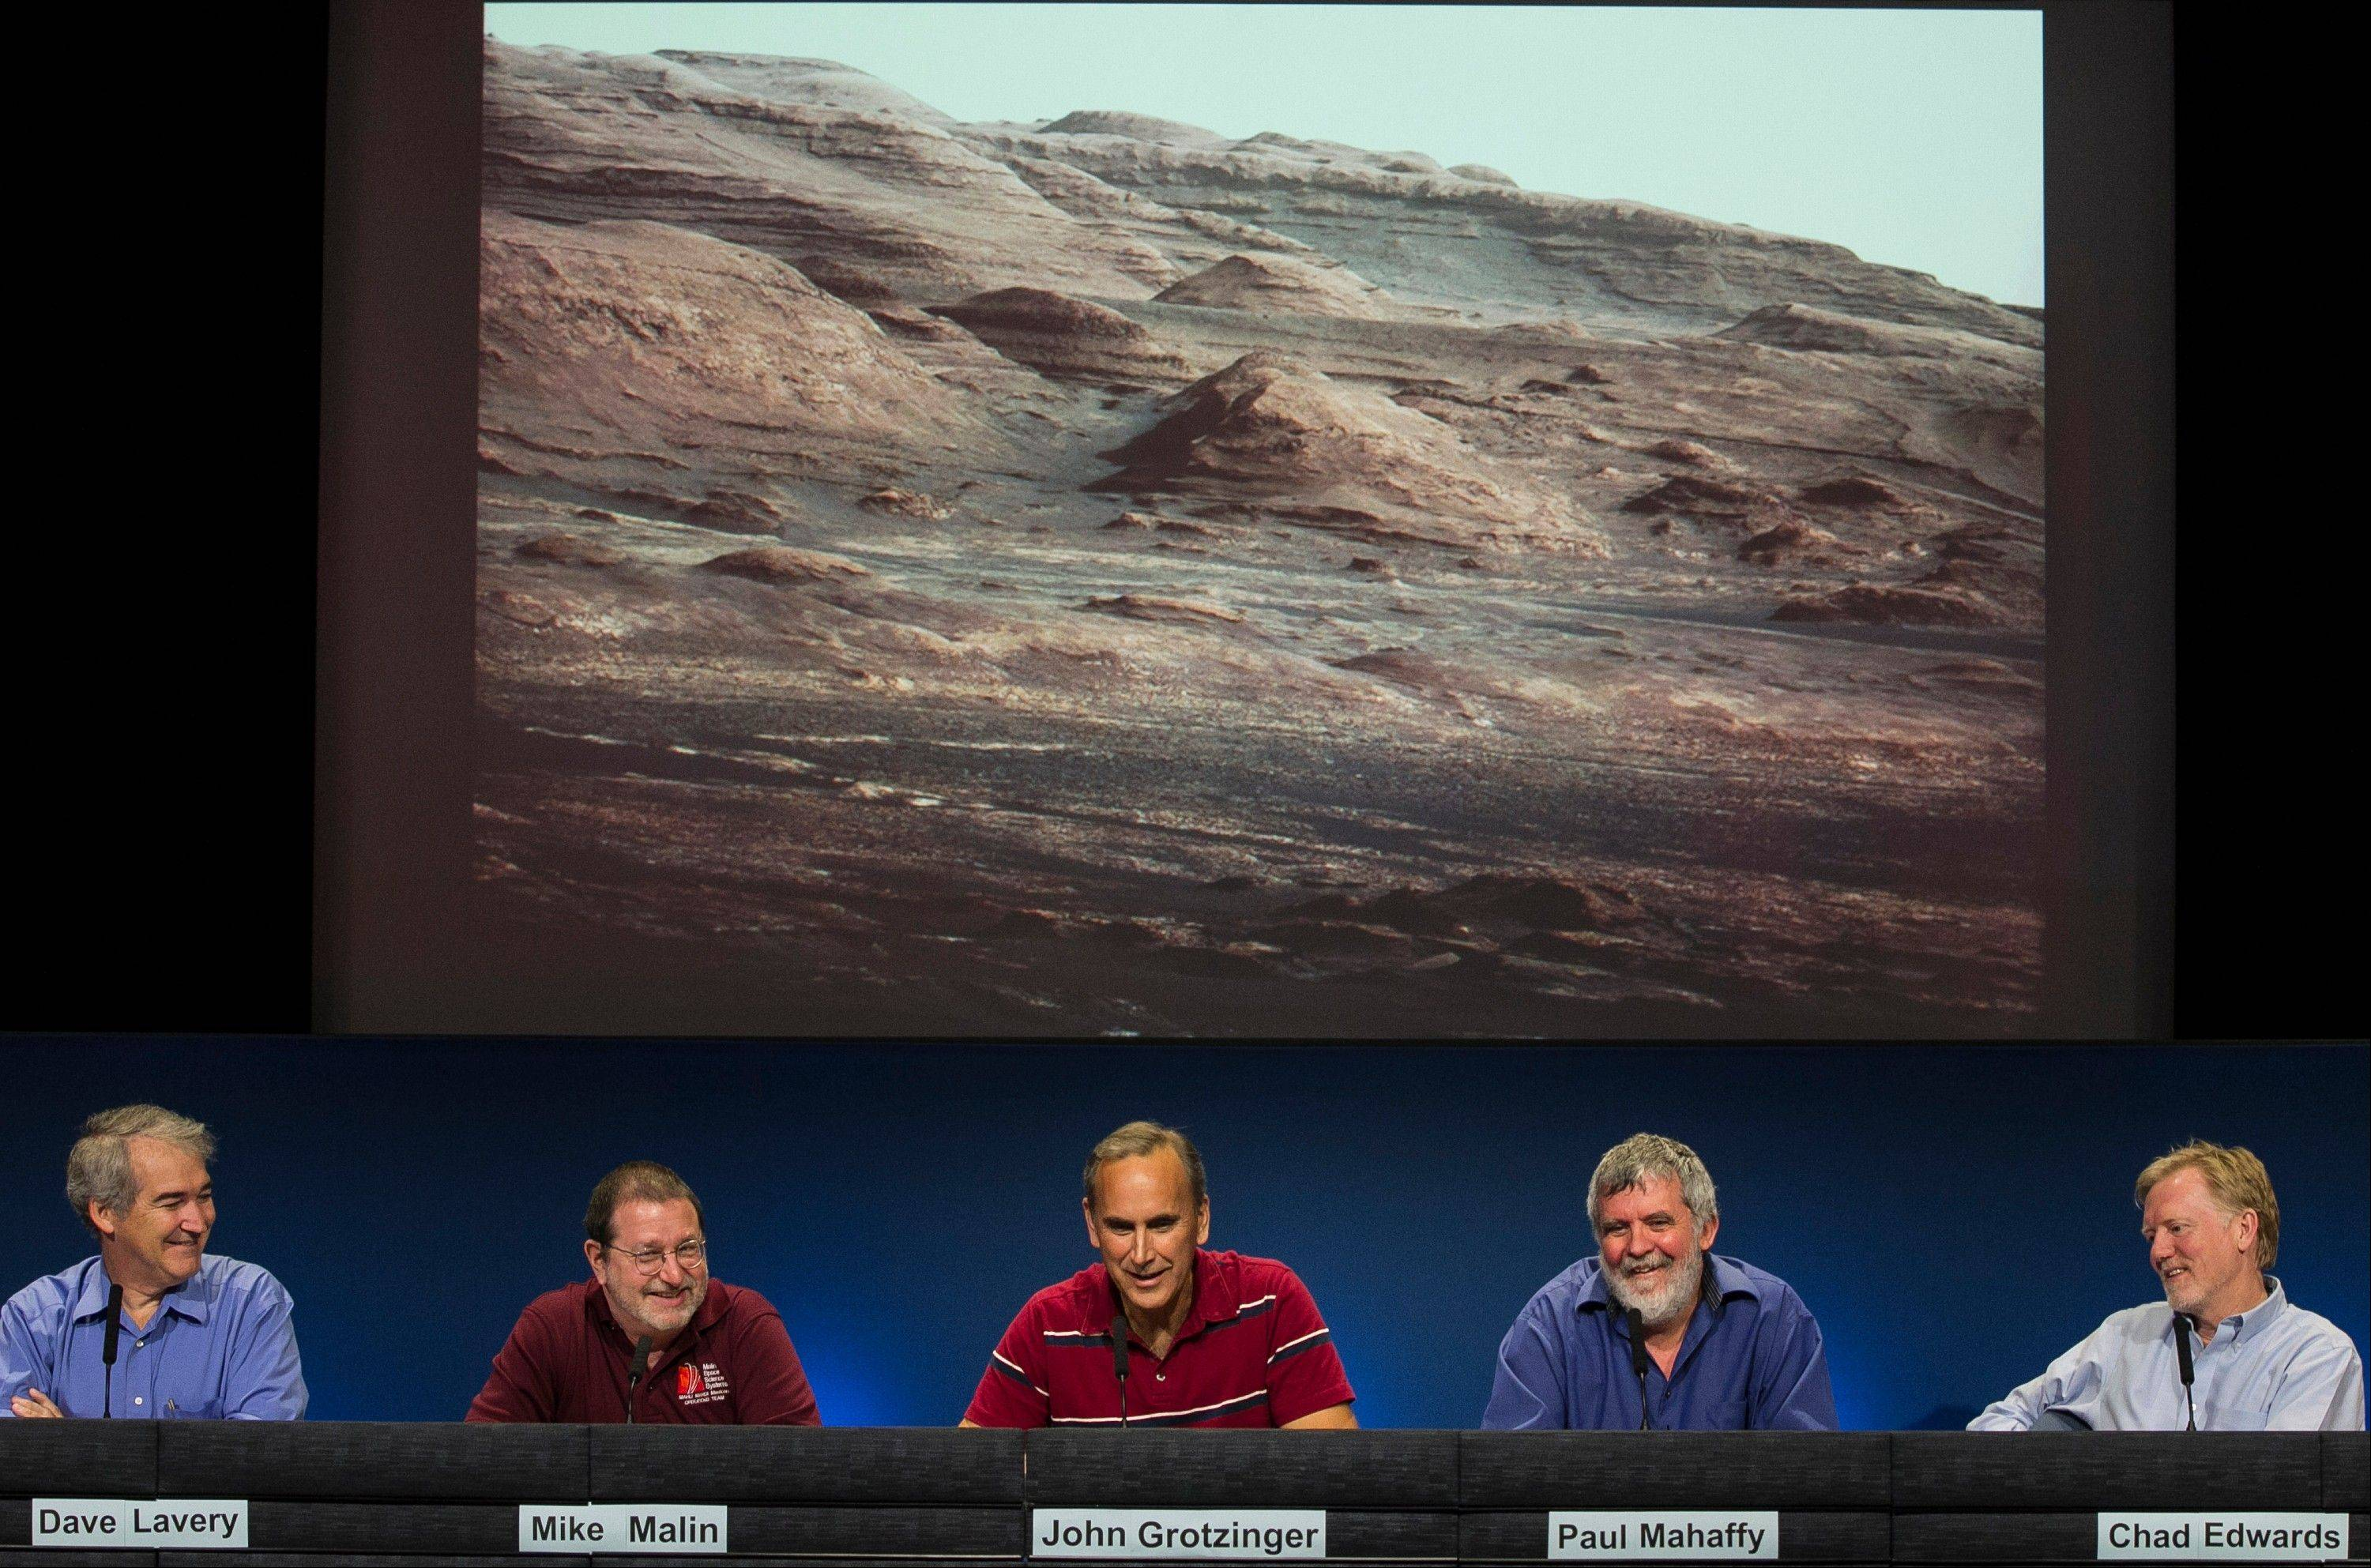 NASA scientists face the press and talk about the Curiosity rover's performance and mission at NASA's Jet Propulsion Laboratory in Pasadena, Calif.